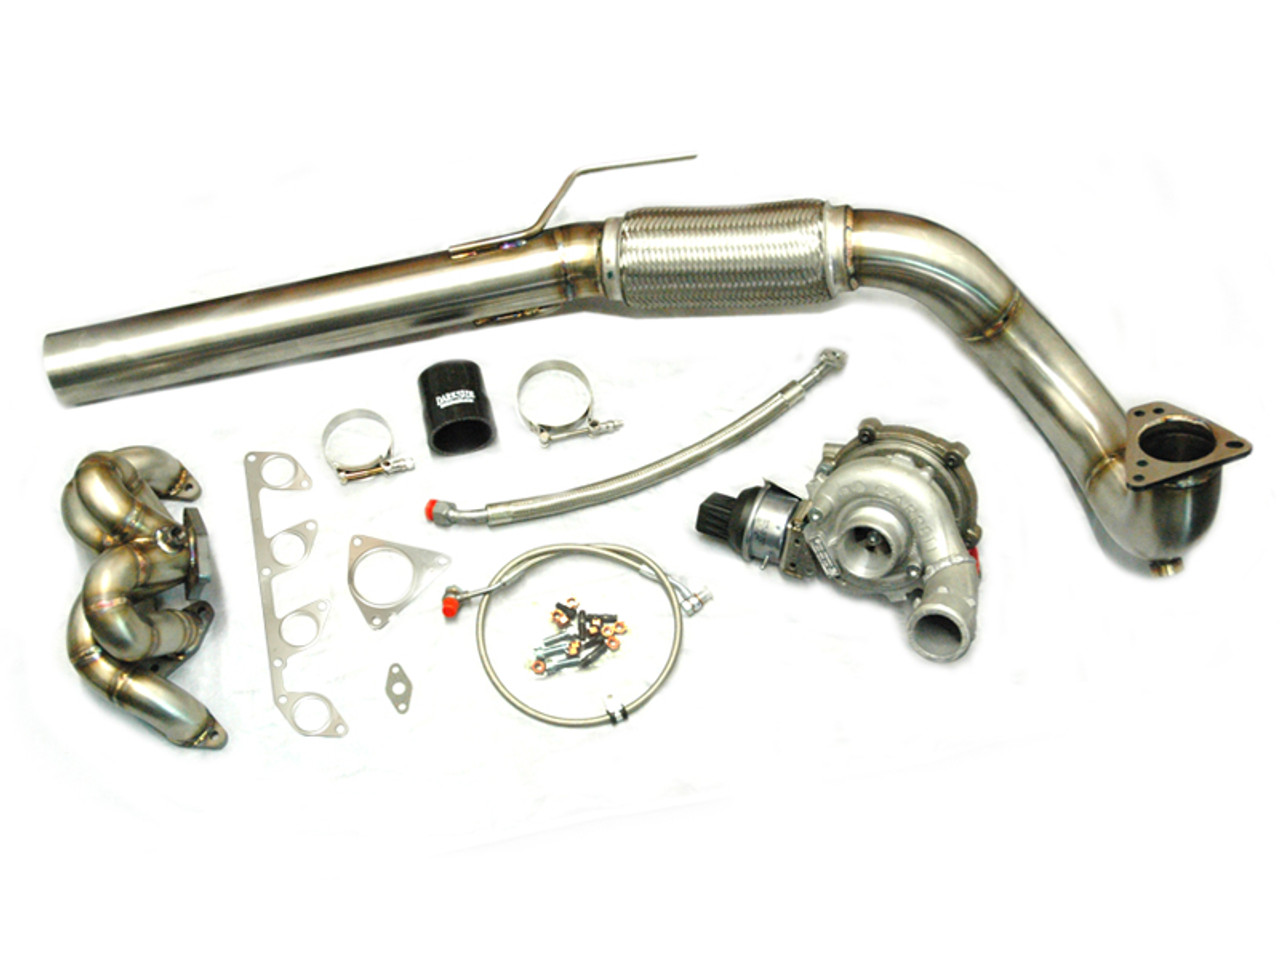 AUDI A3 2.0 TDI Clamp-on Exhaust flexi Repair section Stainless 1.6 TDi  1.9TDi